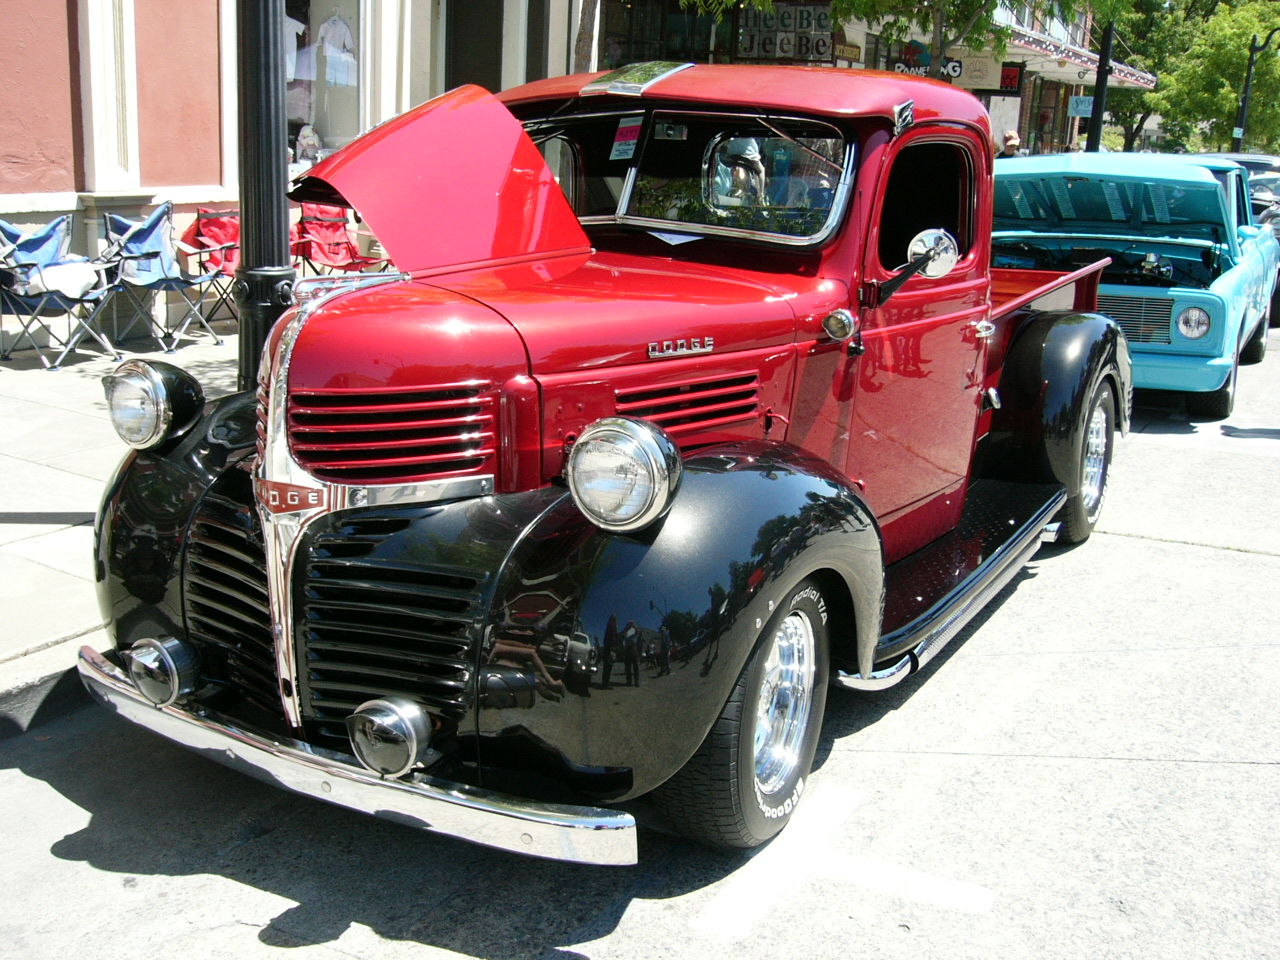 1945 Dodge pickup truck by